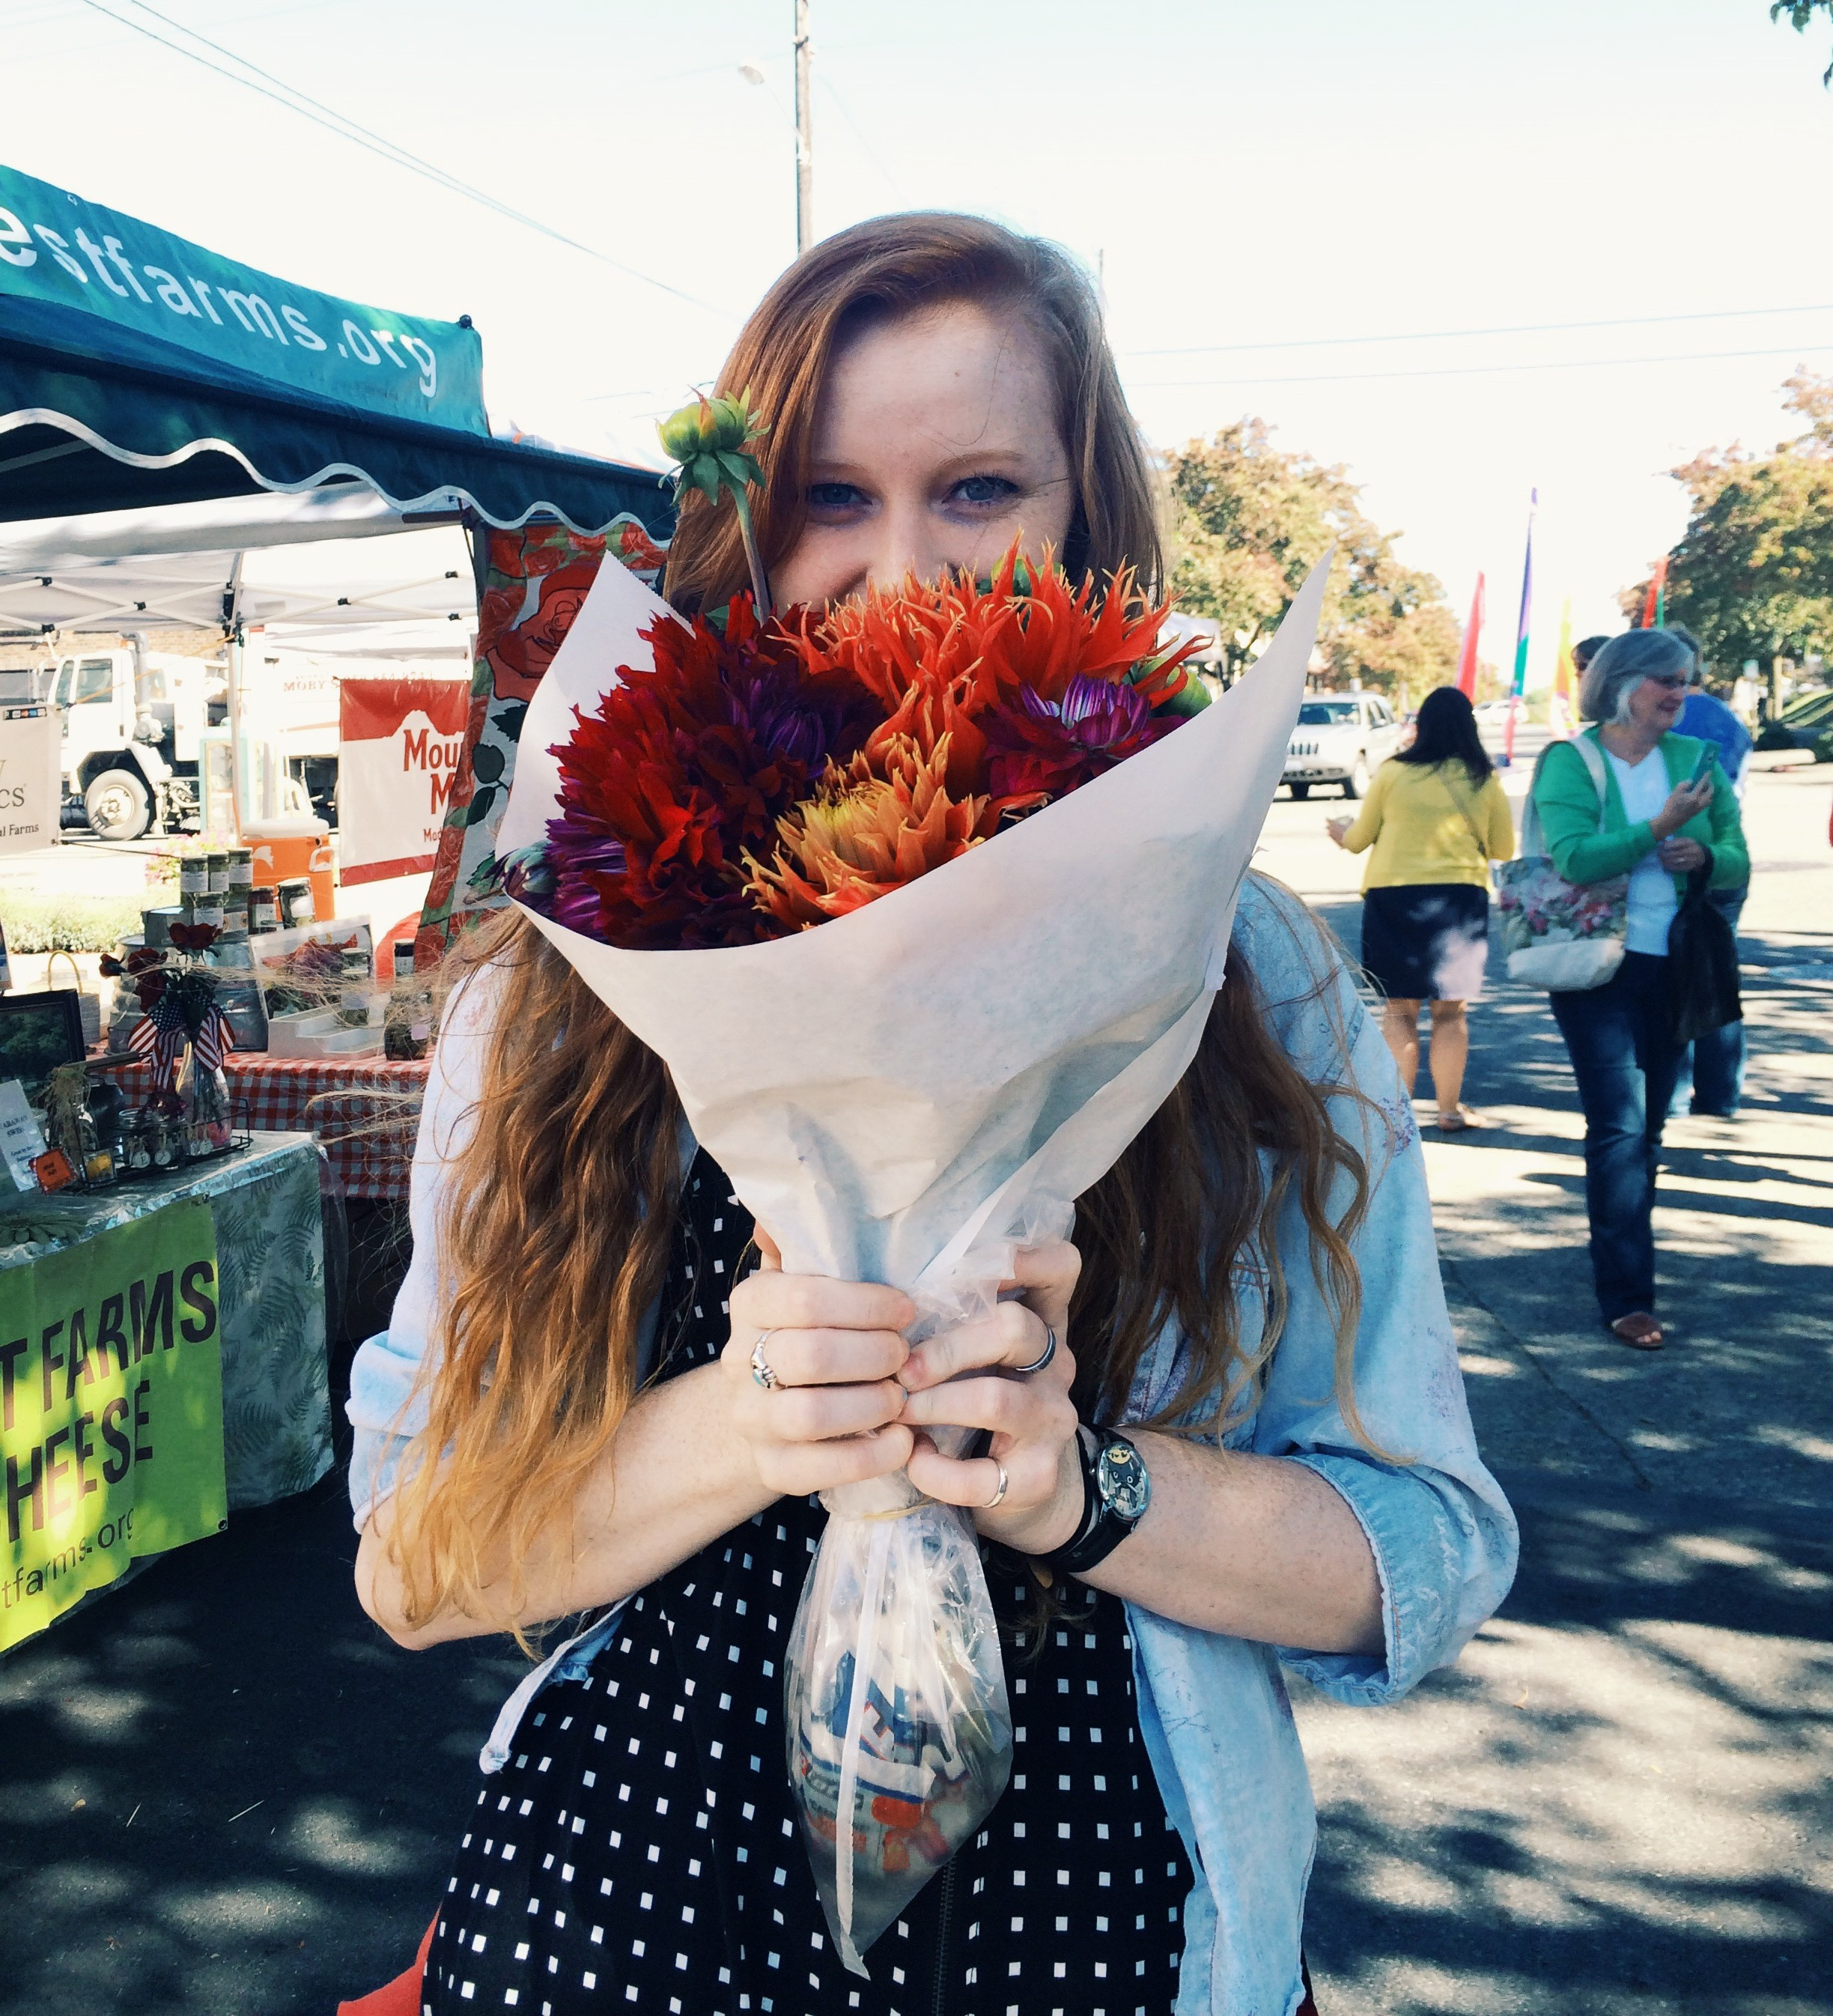 Me ft. dahlias